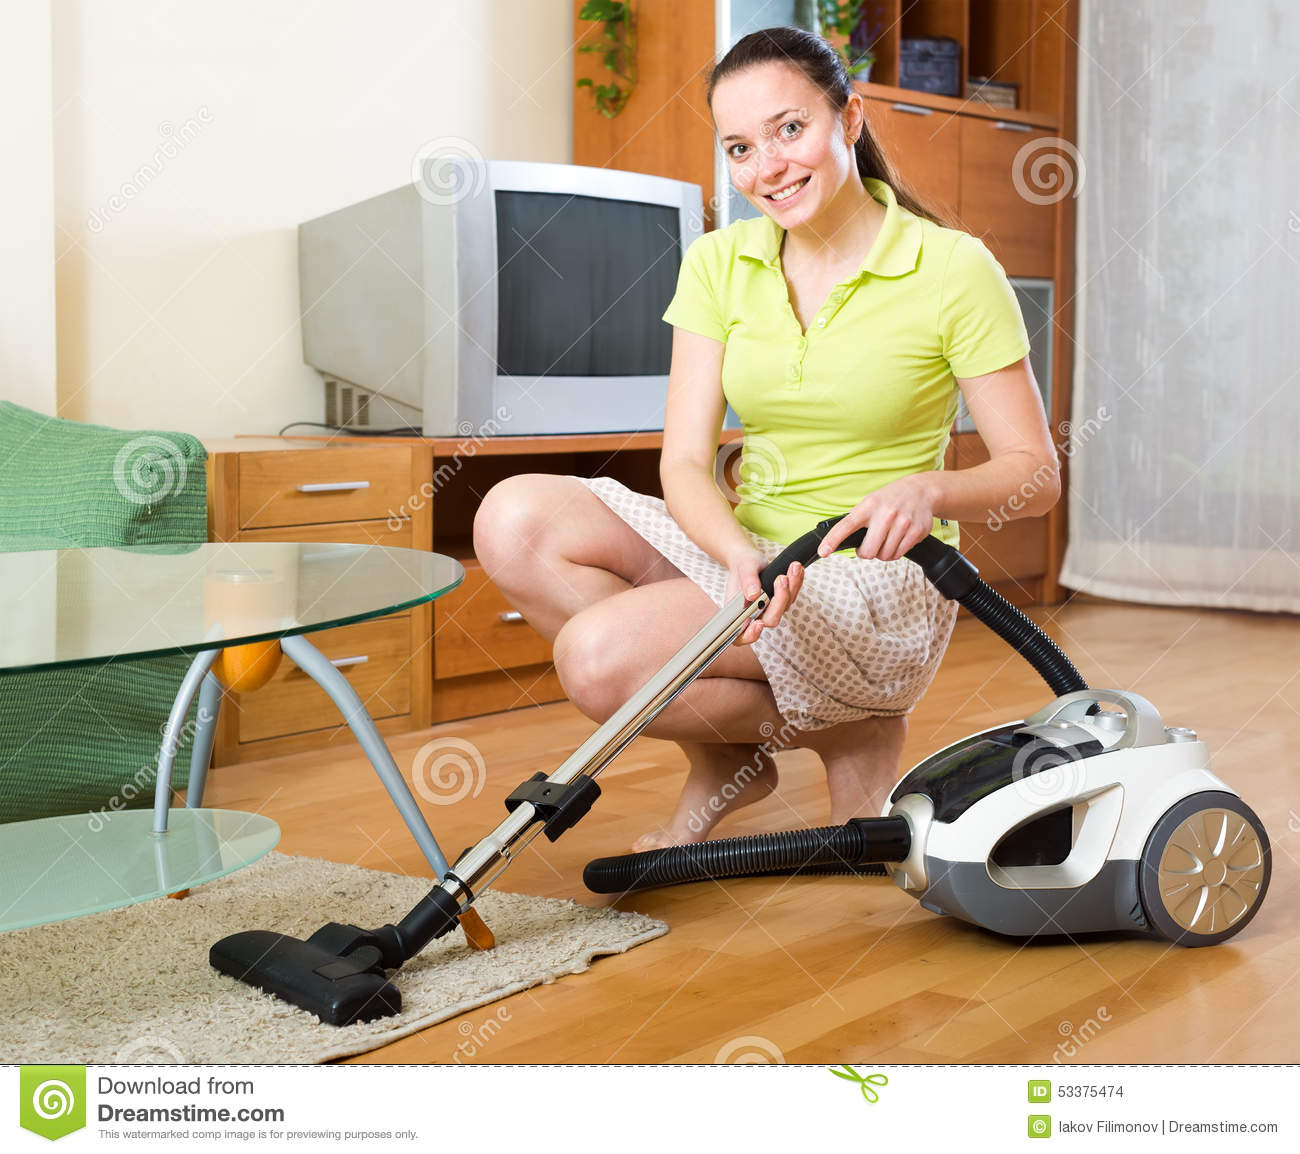 Happy Woman Vacuuming Floor Stock Photo Image 53375474